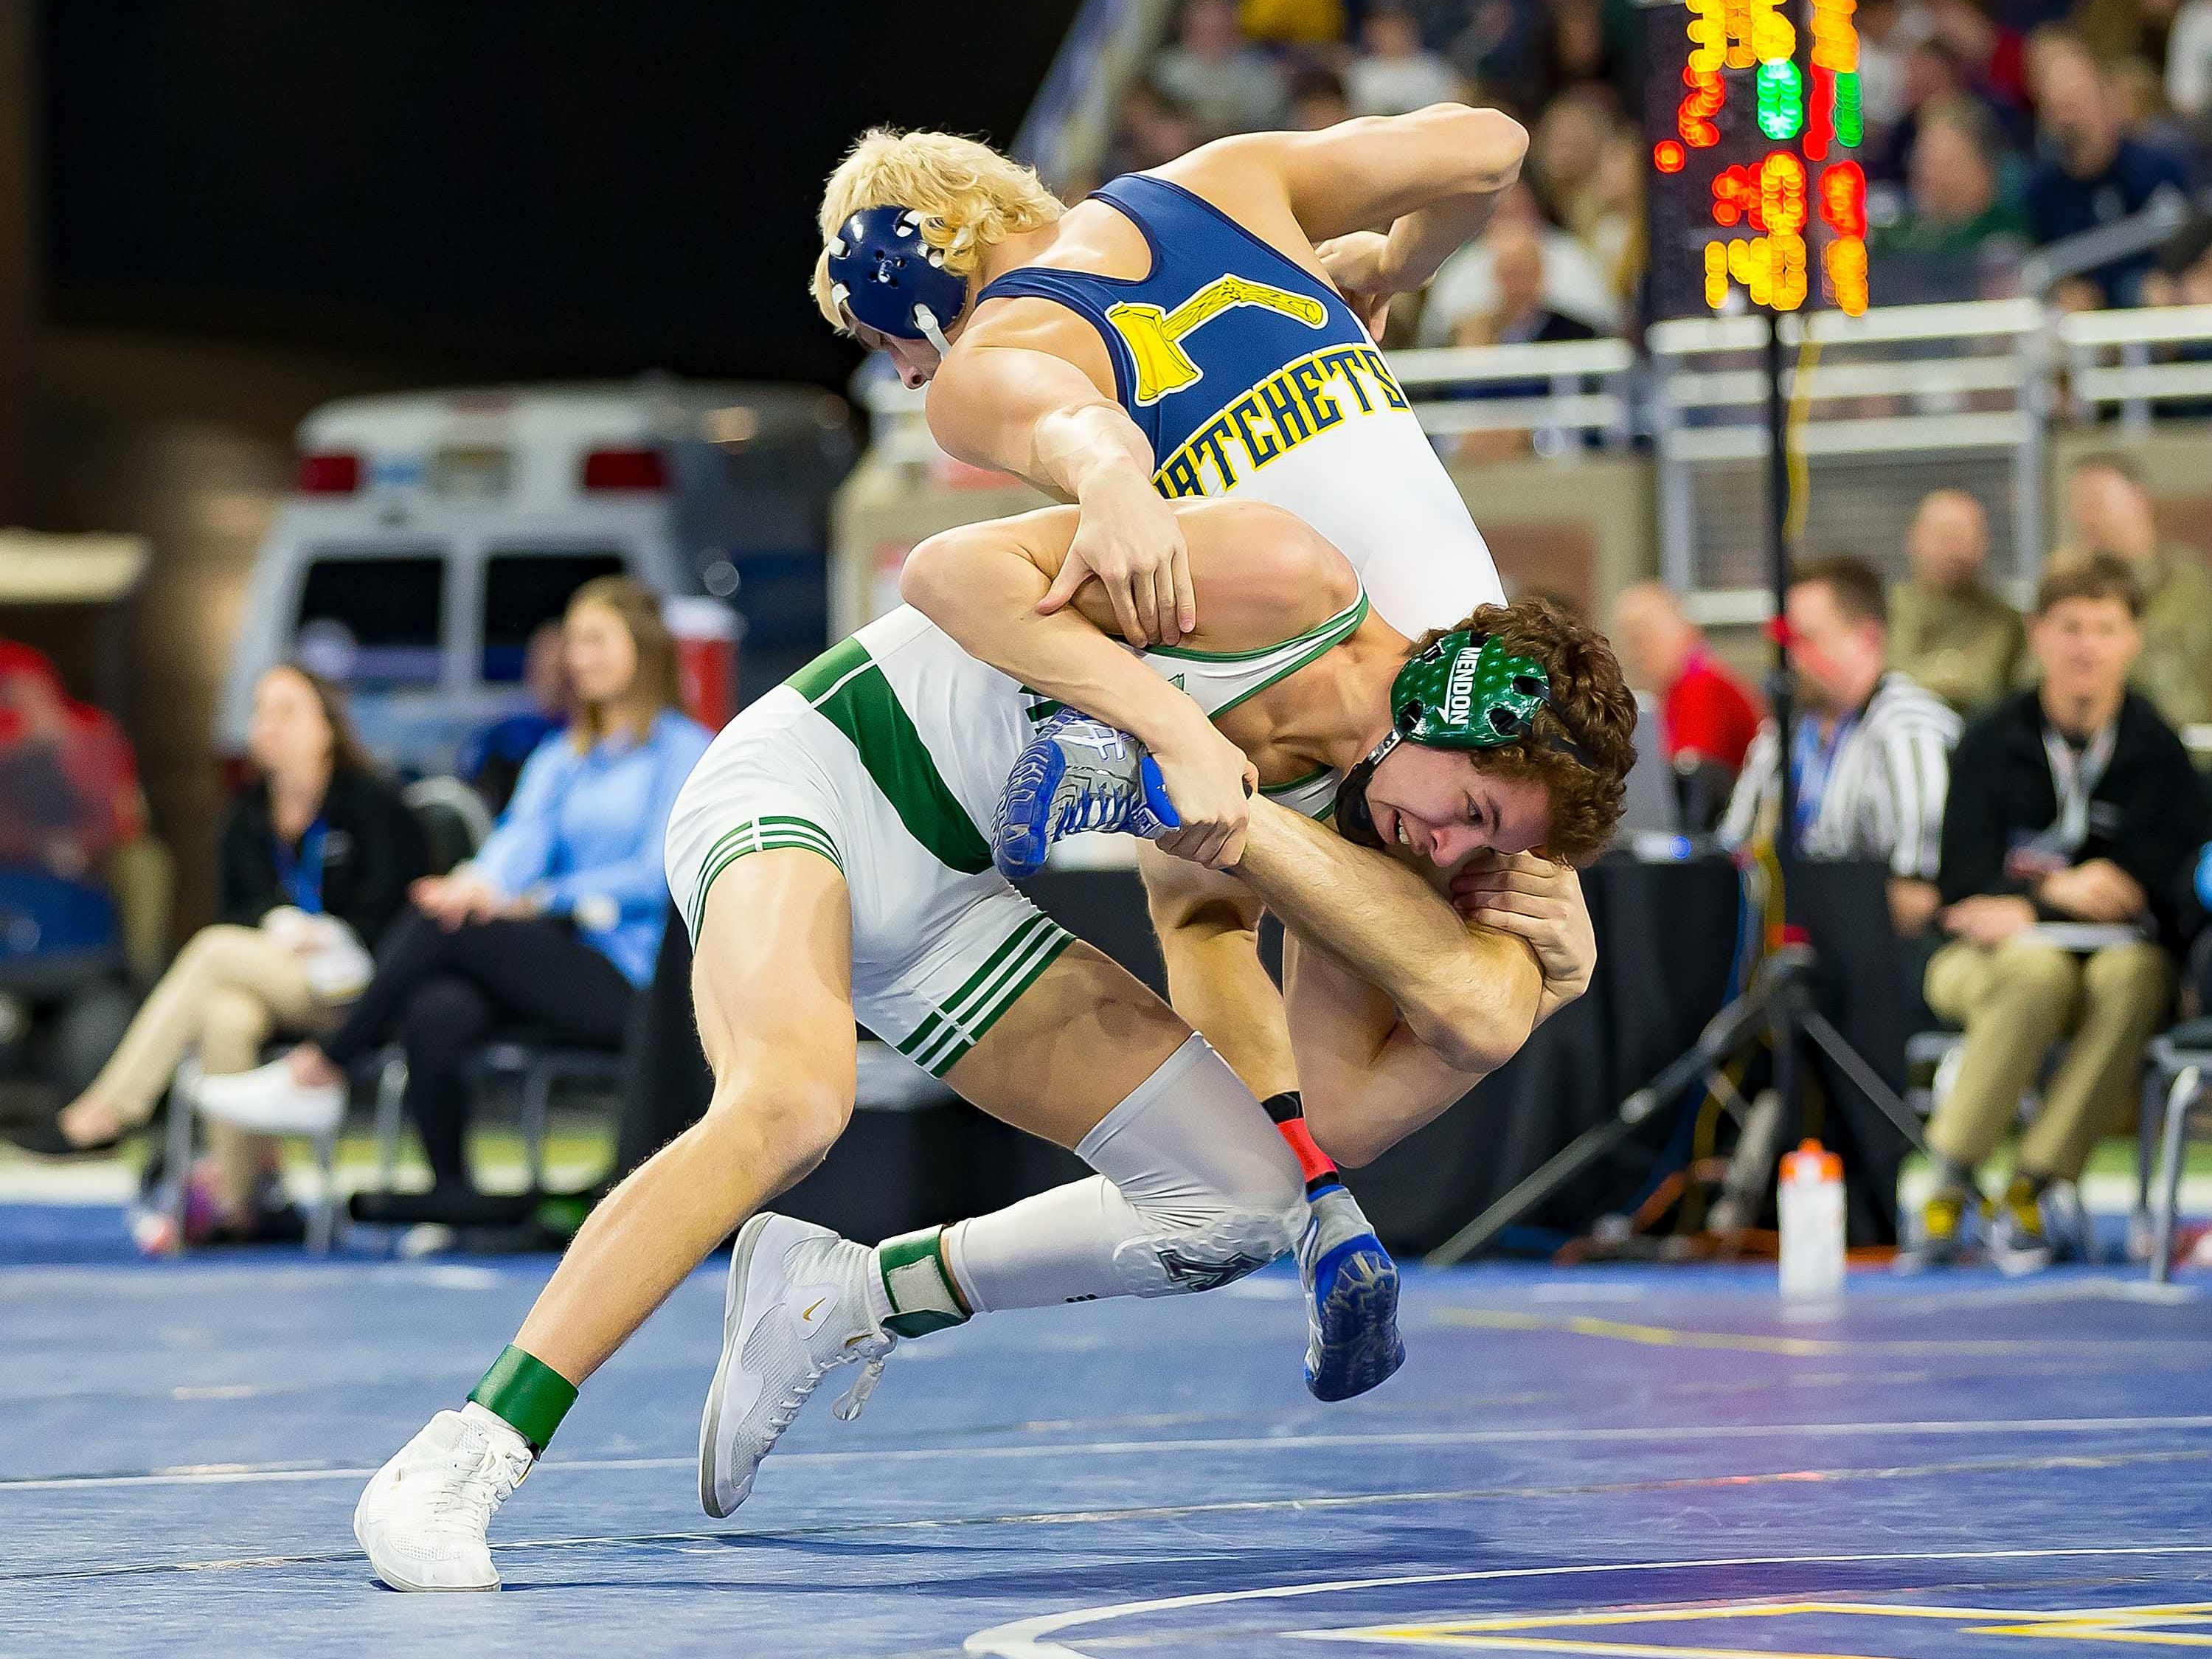 Skyler Crespo, left, of Mendon wrestles with Ryan Wehner of Bad Axe during their 140-pound Division 4 championship match.